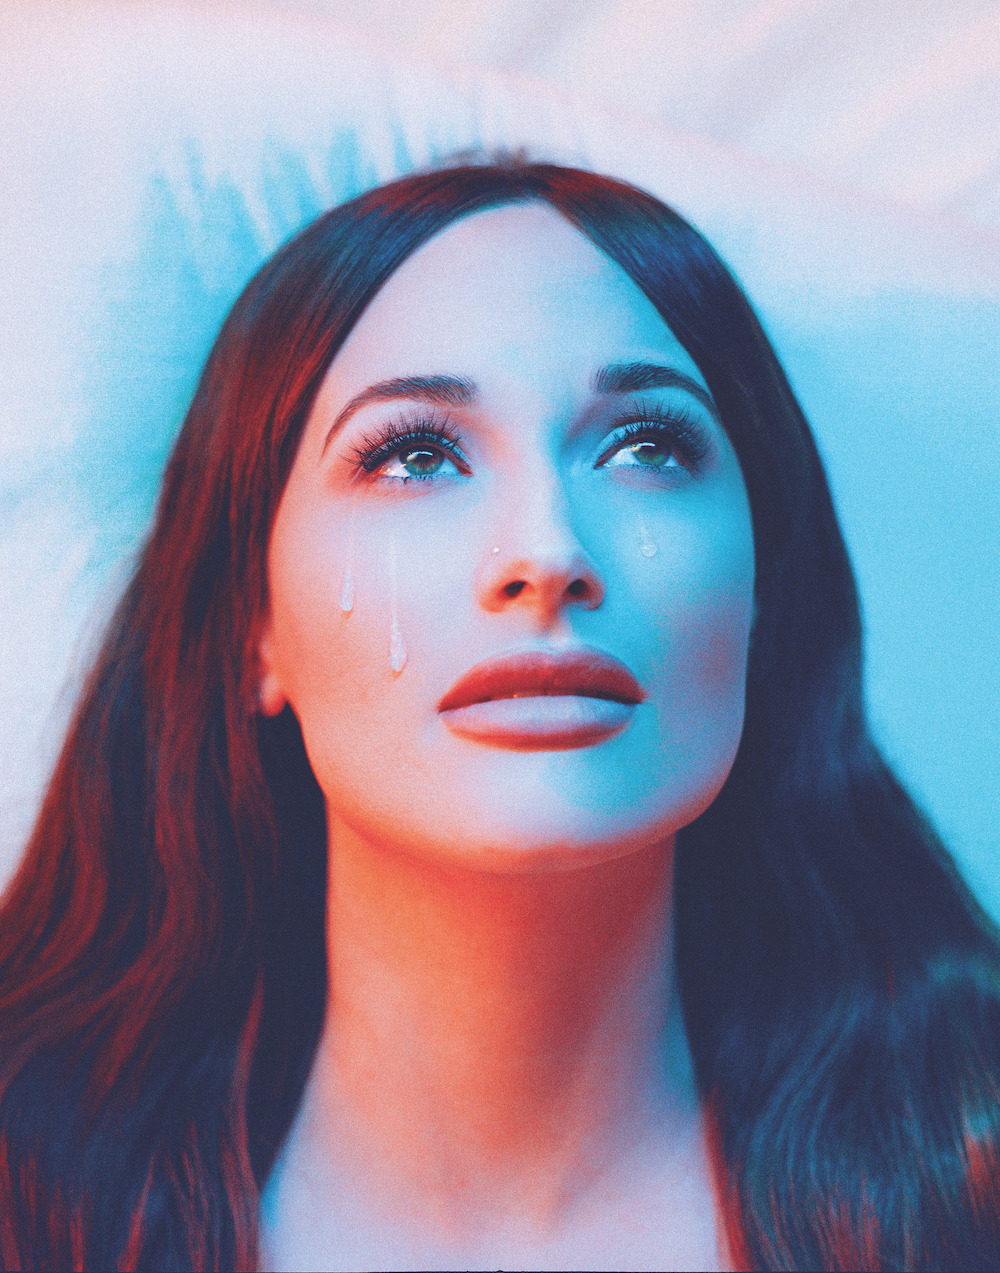 Kacey Musgraves Announces New Album, Film, and Title Track